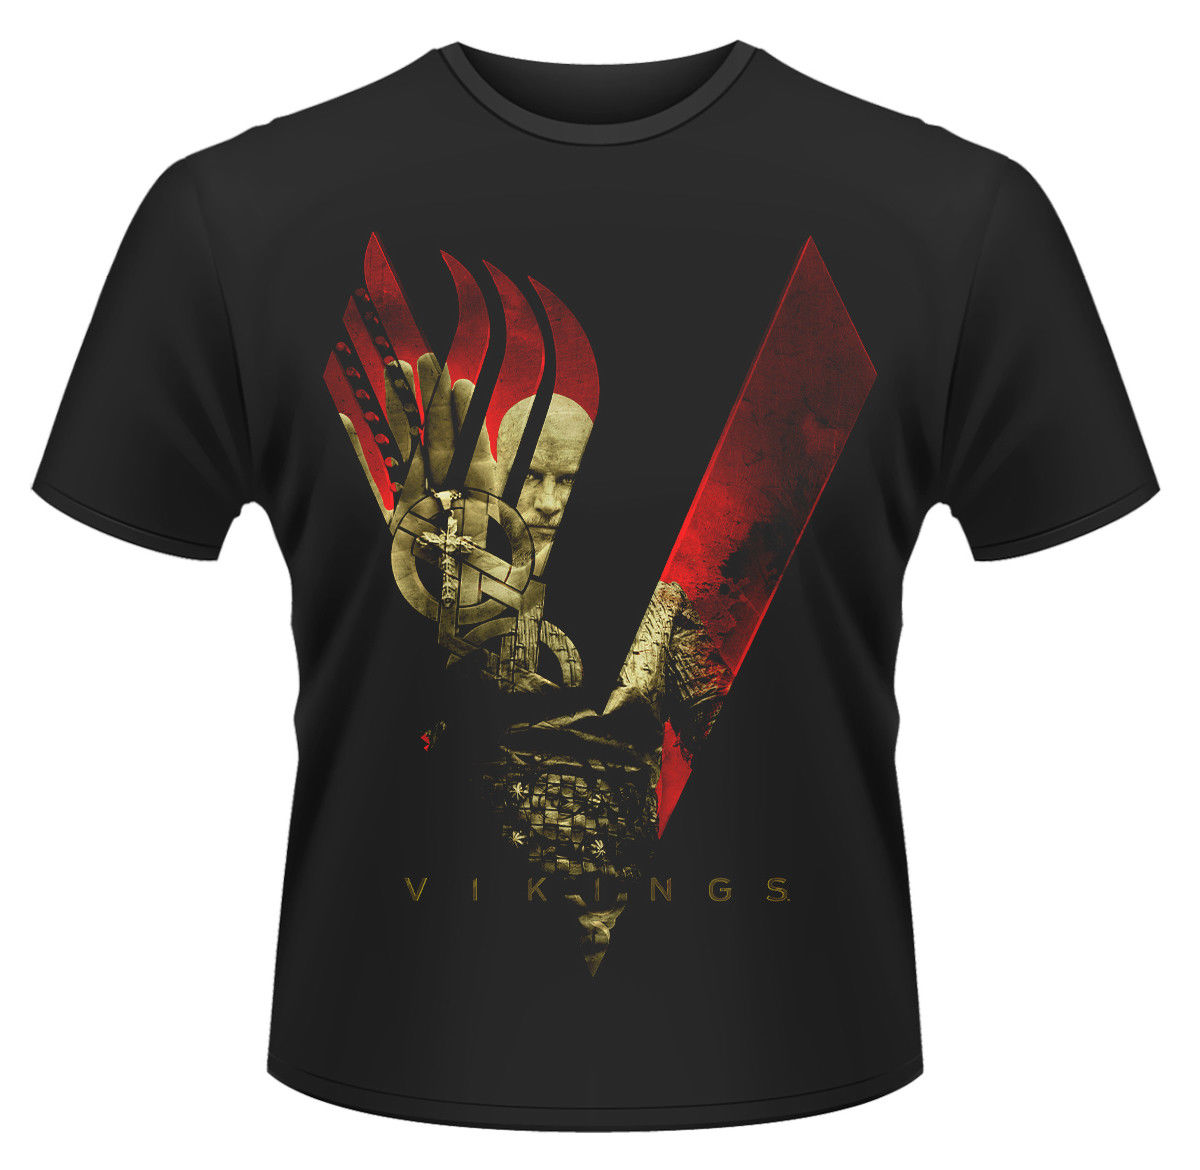 Vikings Blood Sky  T-SHIRT - Nuevo y Oficial T-Shirt Novelty Cool Tops MenS Short Sleeve T shirt Solid Color